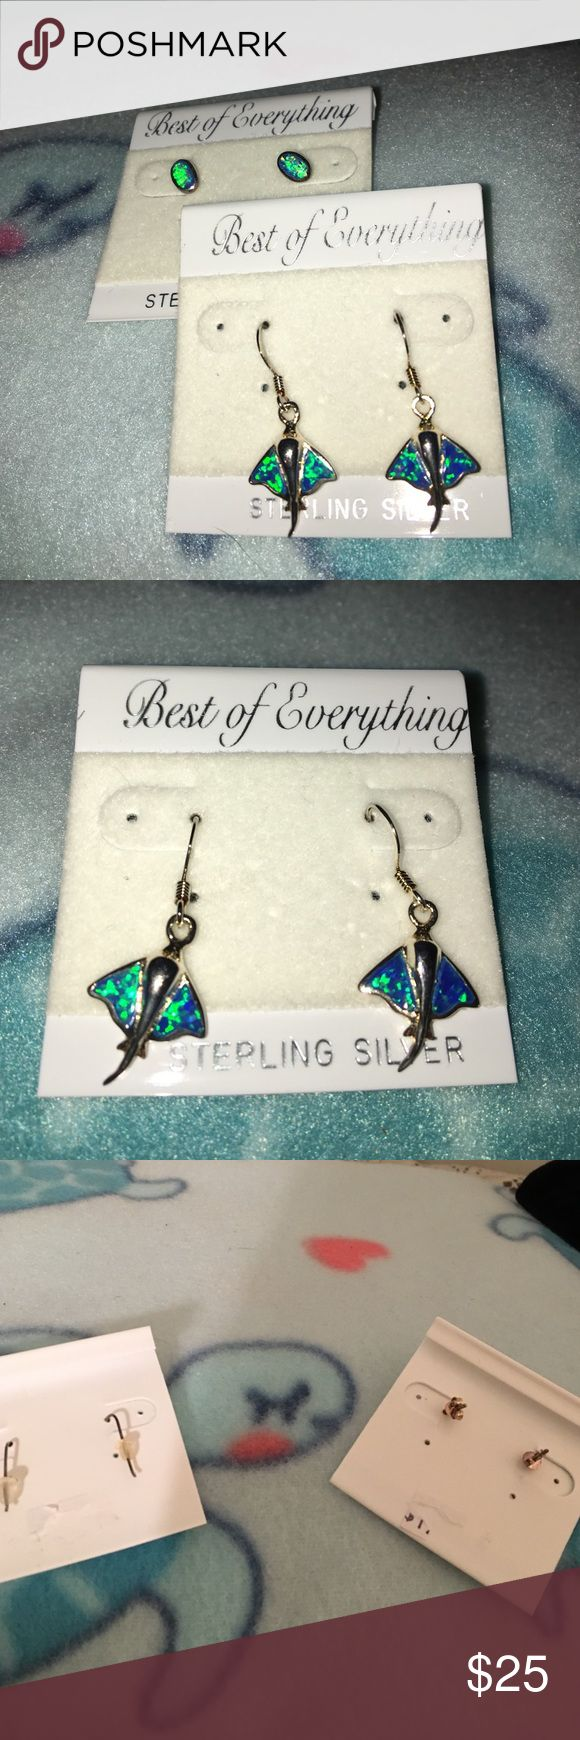 2 Pr Sterling Earrings Floridian touch turquoise stone earrings Best of Everything Jewelry Earrings